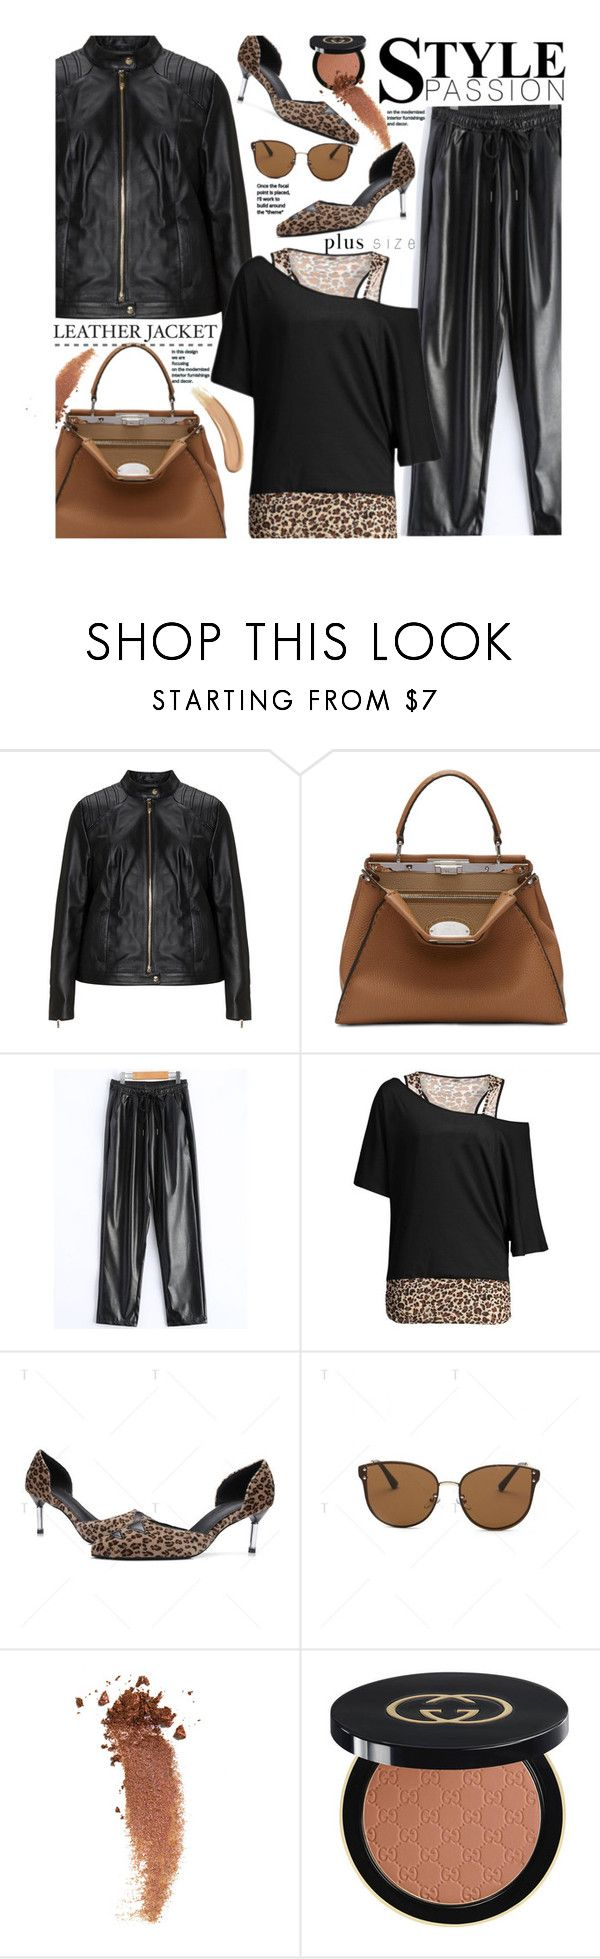 """Street Chic (plus size)"" by beebeely-look ❤ liked on Polyvore featuring Jette, Fendi, Gucci, leatherpants, plussize, streetwear, StreetChic and twinkledeals"